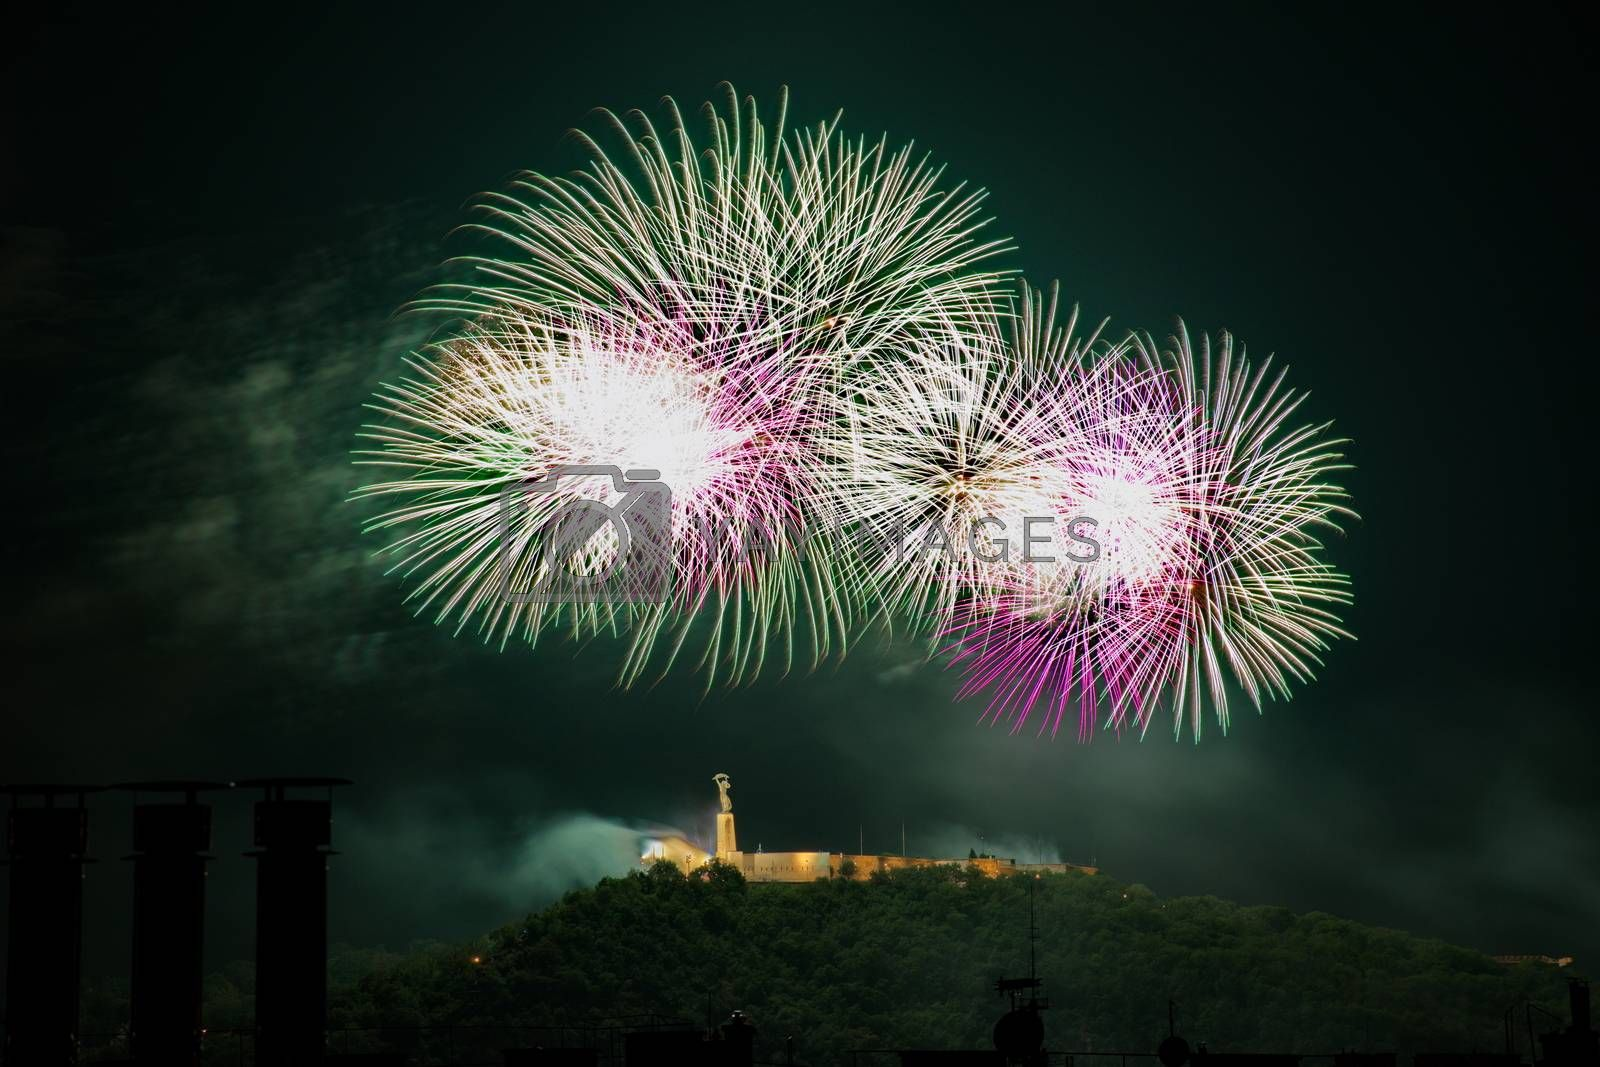 Fireworks over Liberty statue in Budapest, Hungary